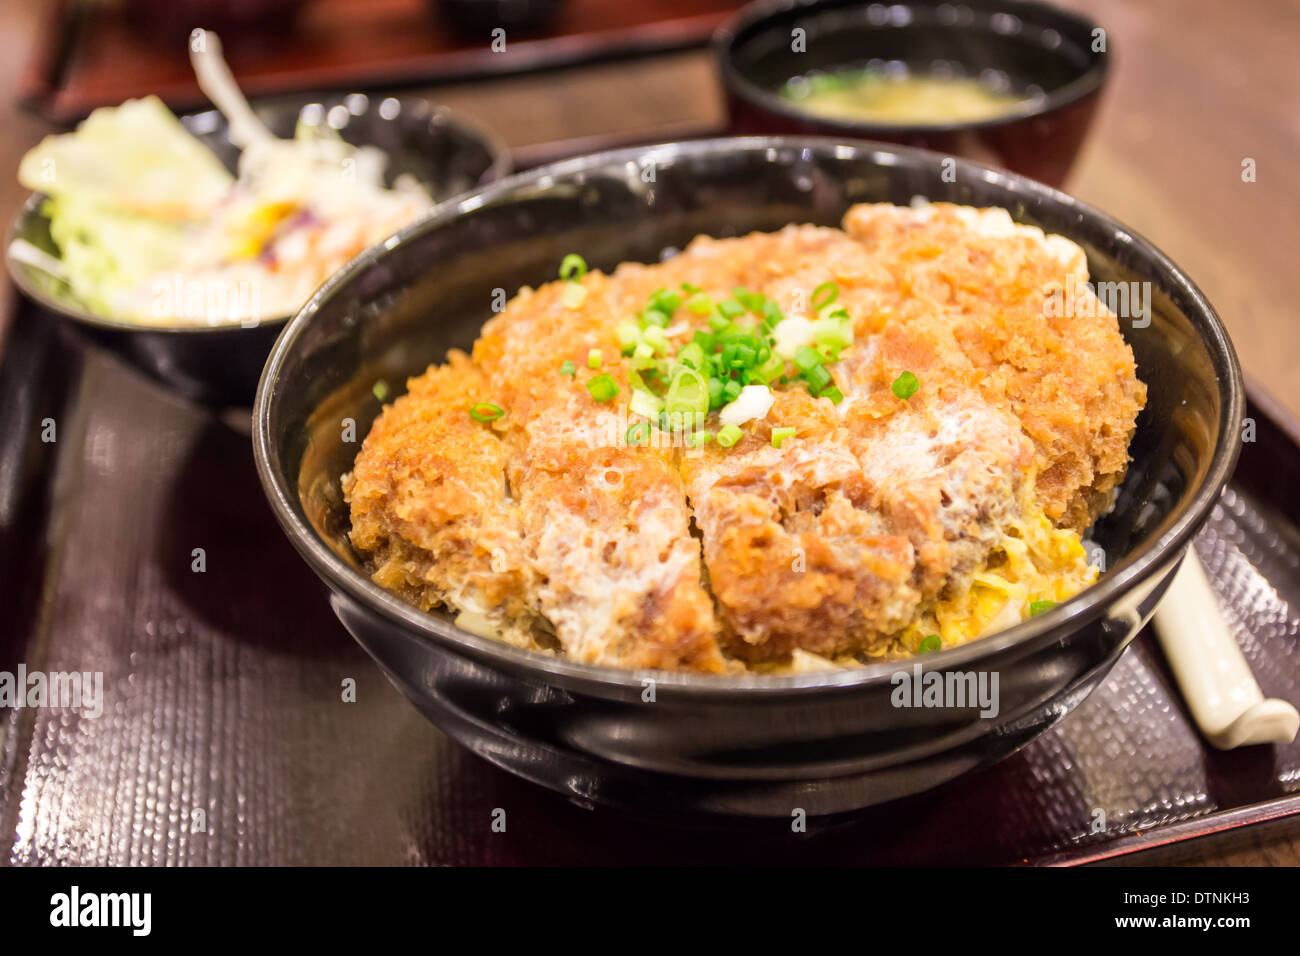 Katsudon - Japanese breaded deep fried pork cutlet (tonkatsu) topped with egg on steamed rice. - Stock Image